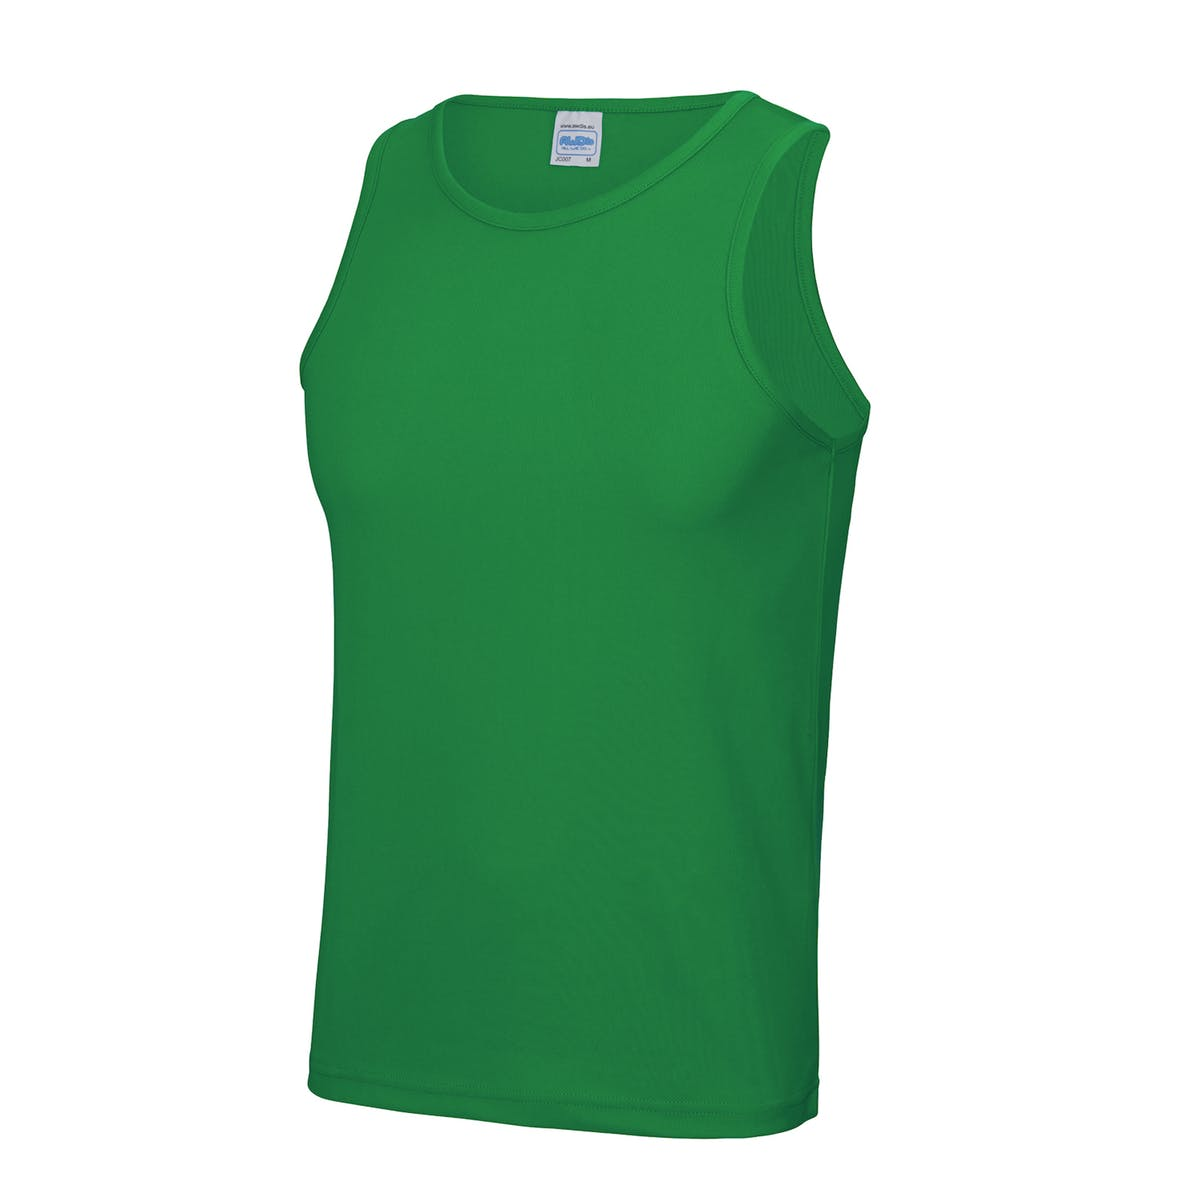 kelly green sports vest